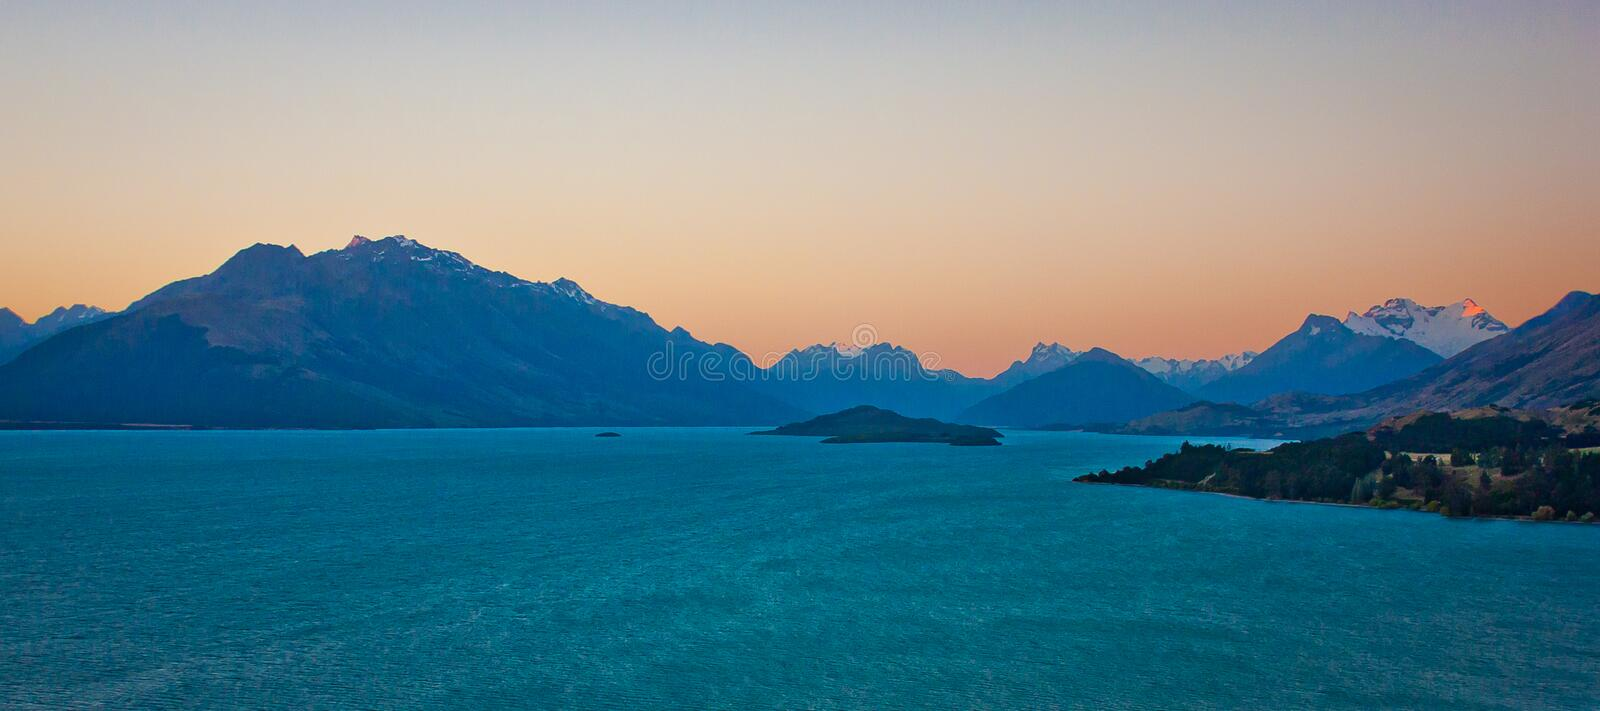 Lake Pukaki at the sunset time, New Zealand. Mt. Cook national park, travel NZ royalty free stock photography